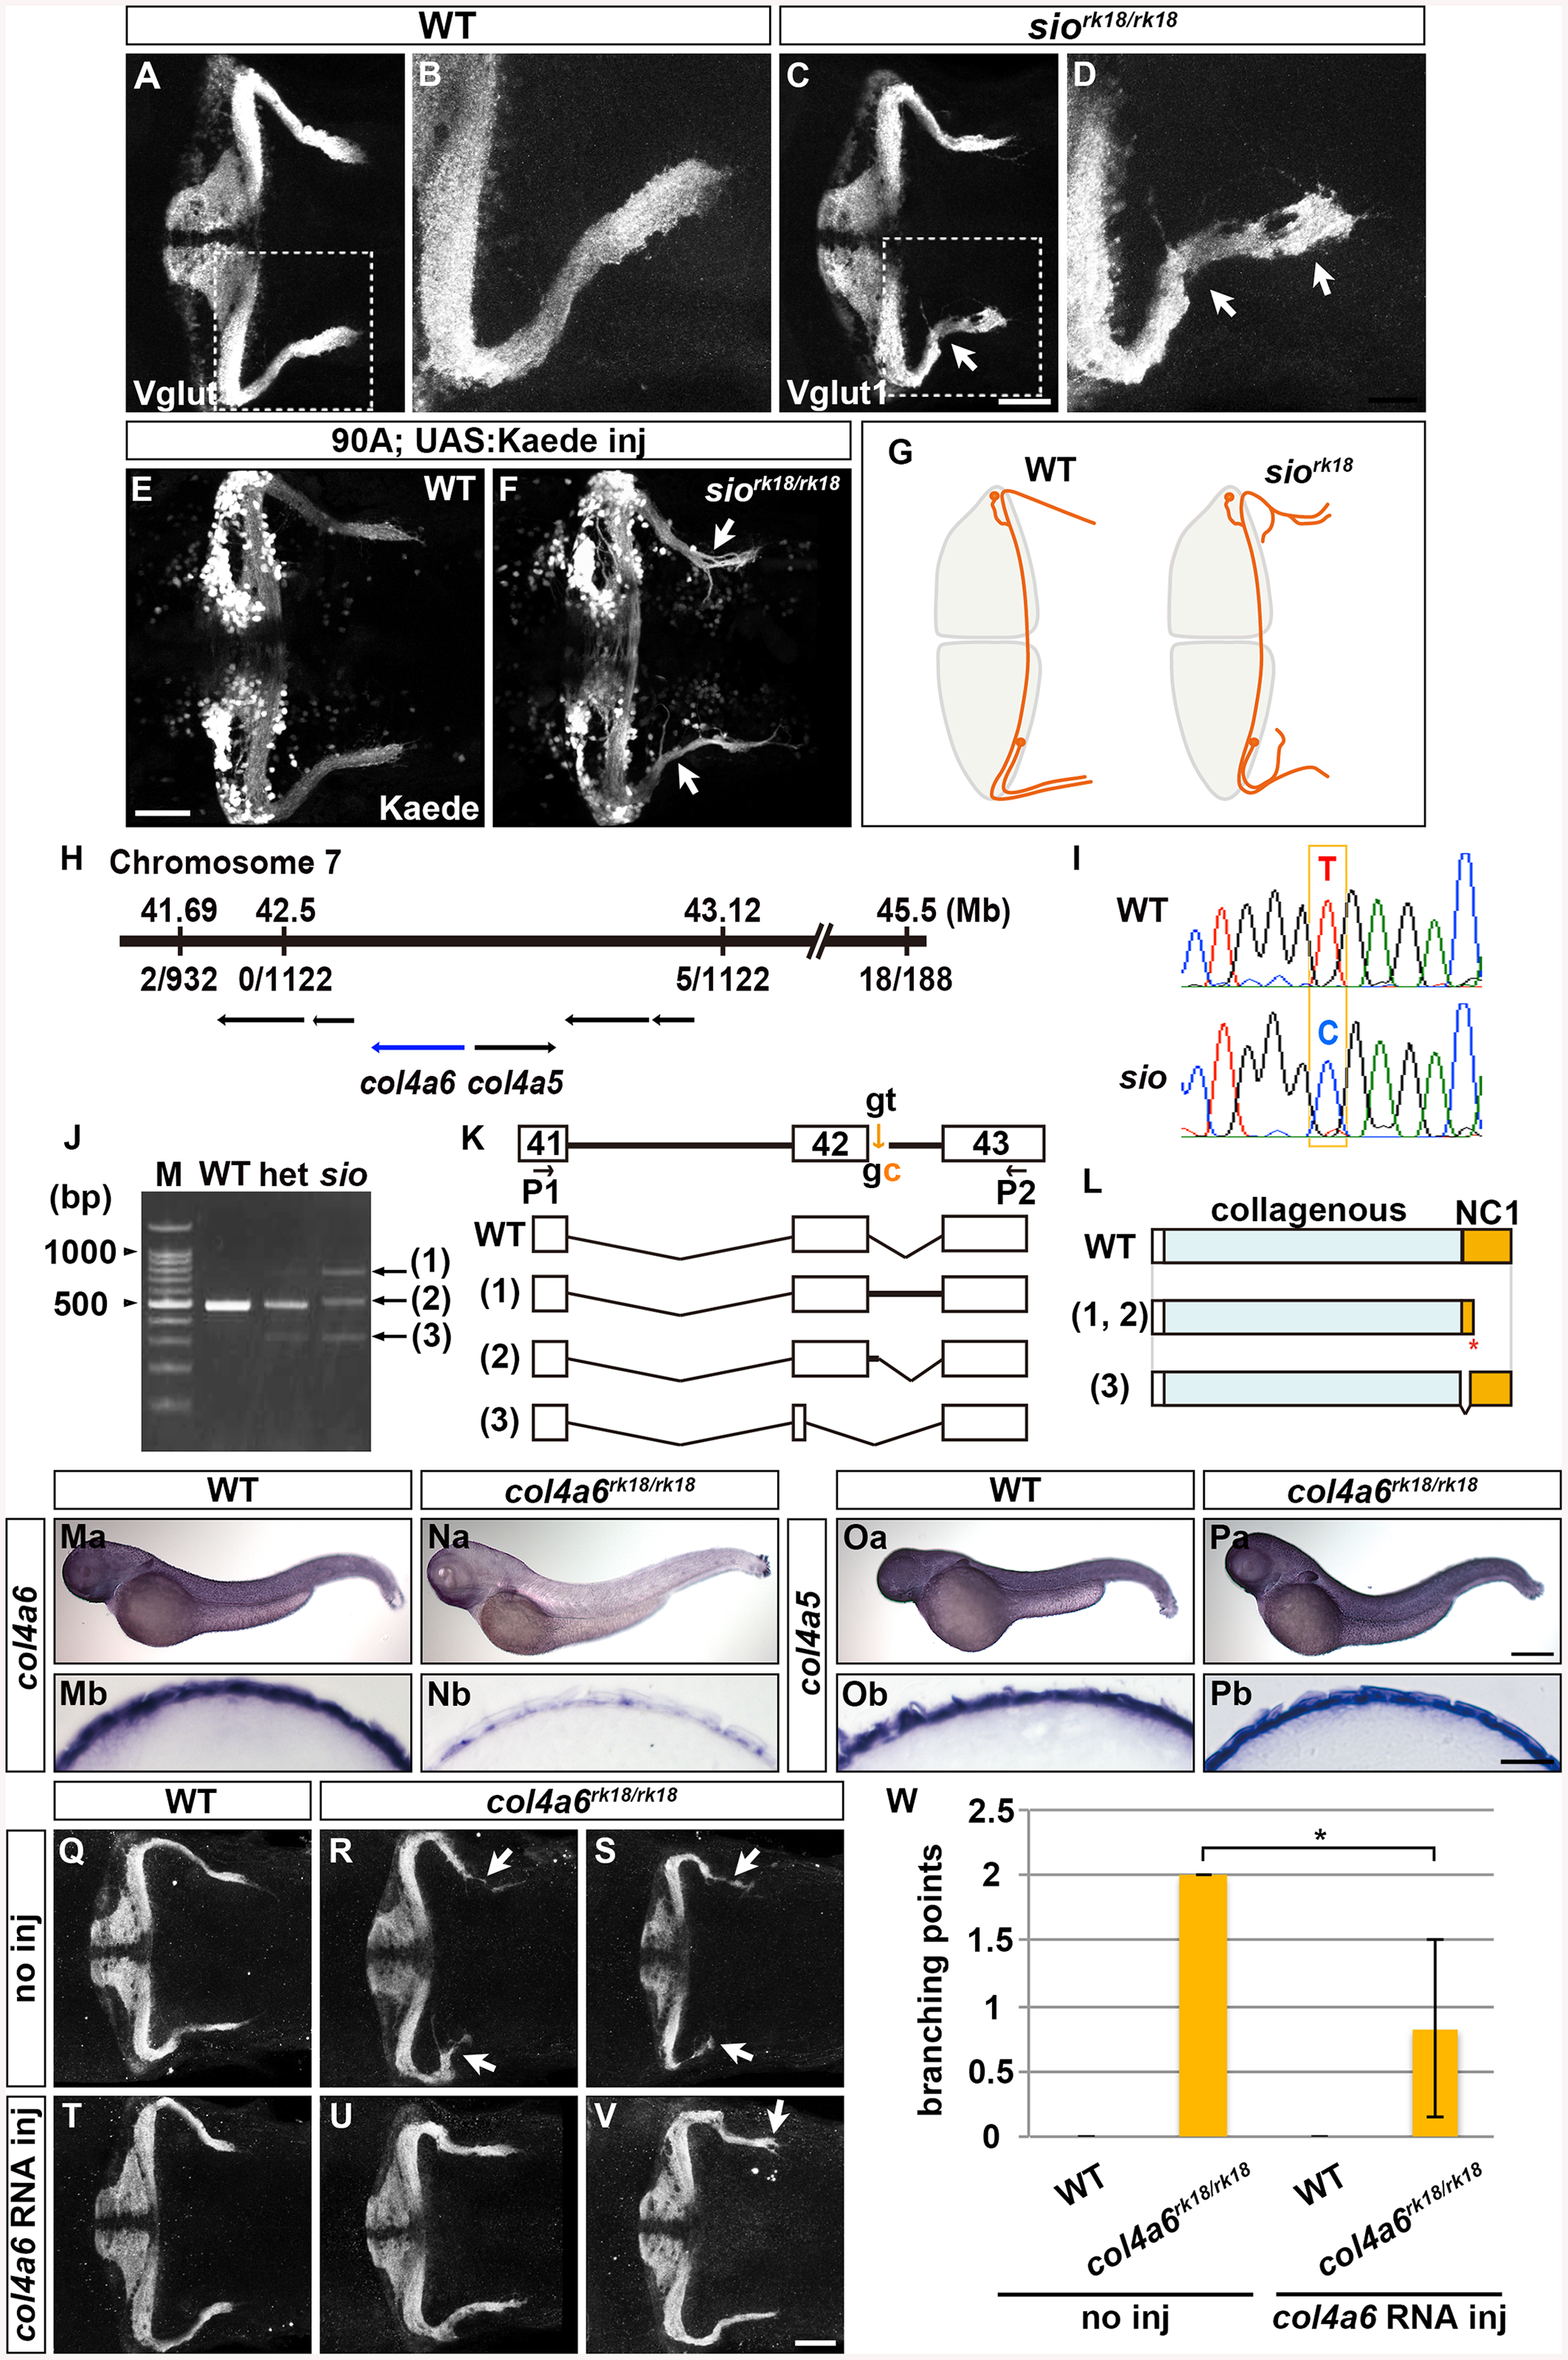 Type IV collagen gene <i>col4a6</i> is required for axogenesis of the GCs in caudolateral lobes.